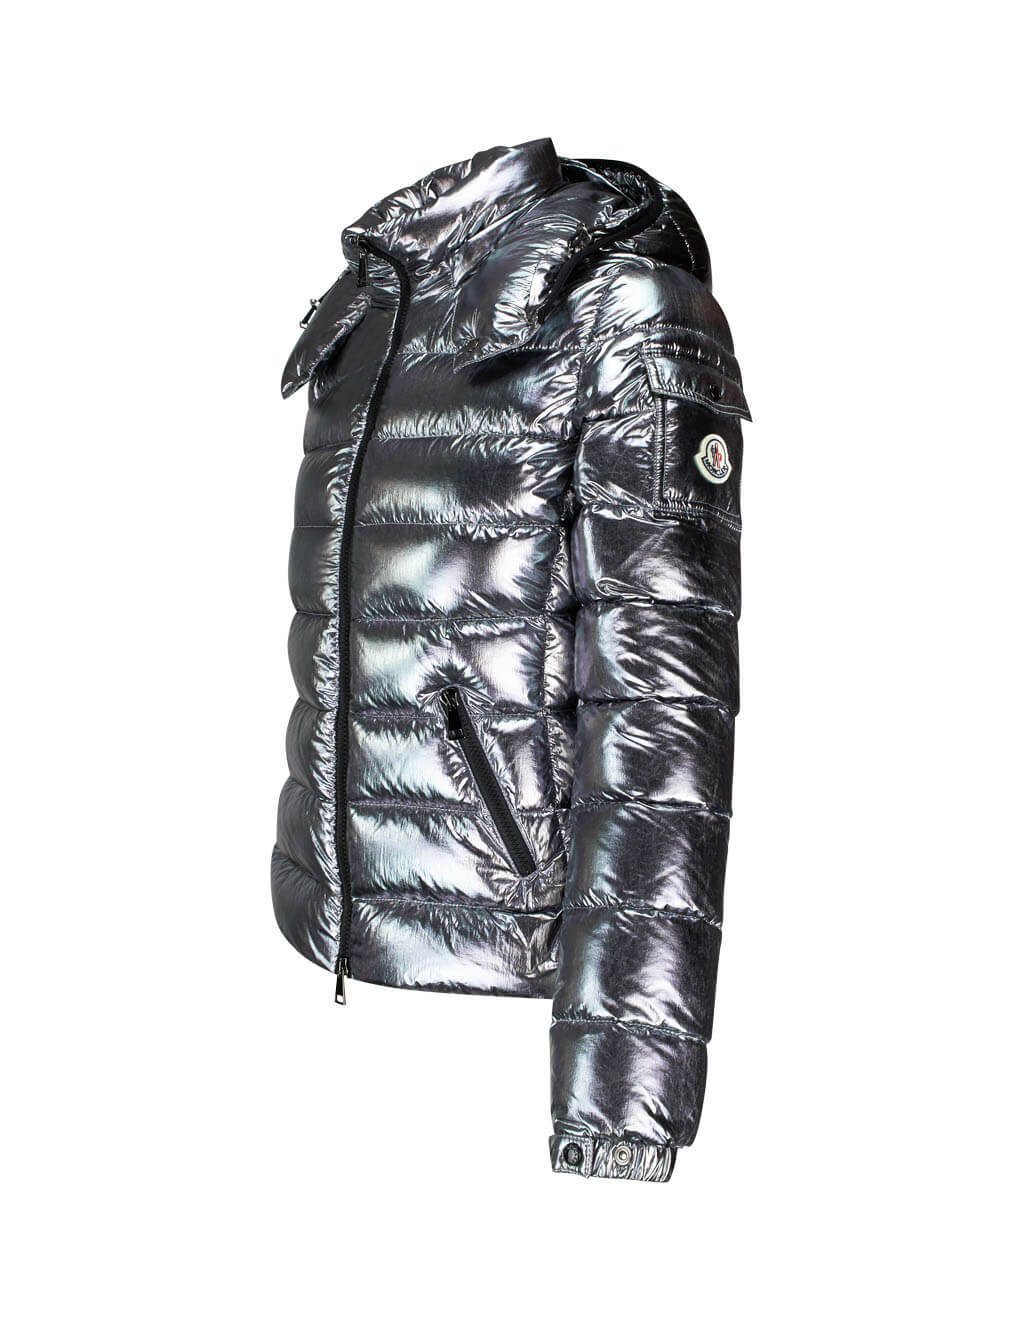 Moncler Women's Giulio Fashion Silver Bady Jacket 4688405C0291910